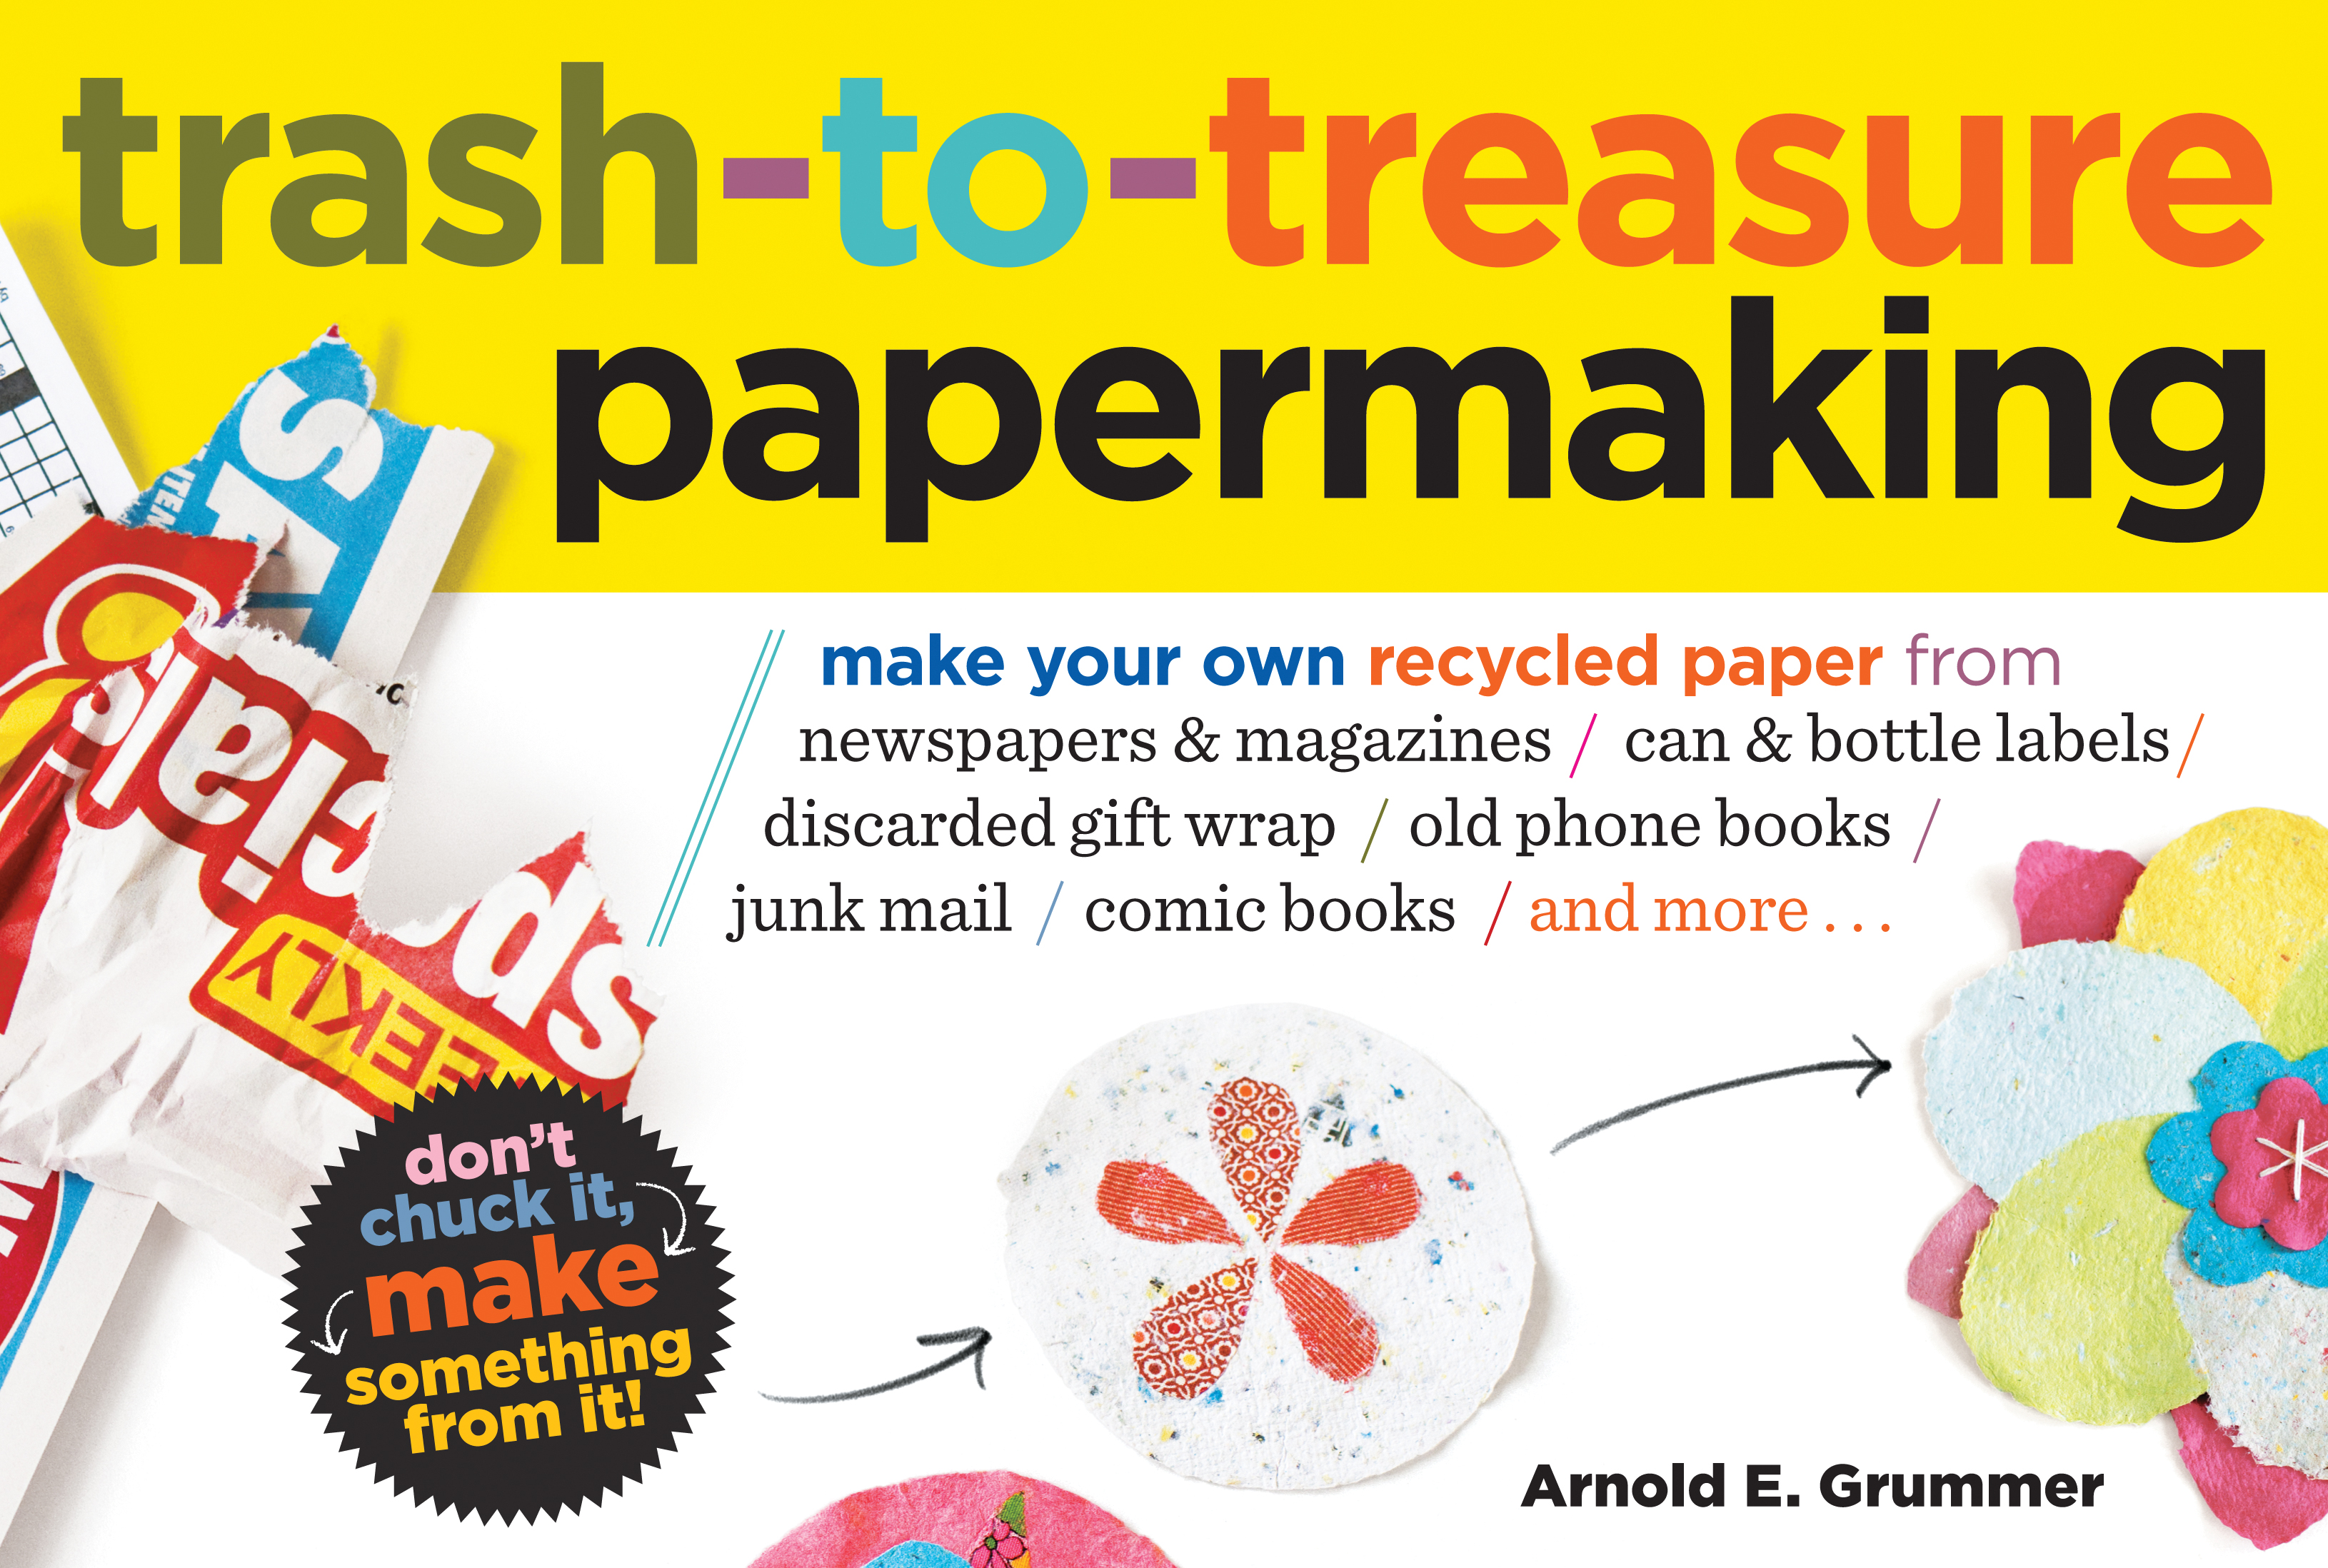 Trash-to-Treasure Papermaking Make Your Own Recycled Paper from Newspapers & Magazines, Can & Bottle Labels, Disgarded Gift Wrap, Old Phone Books, Junk Mail, Comic Books, and More - Arnold Grummer